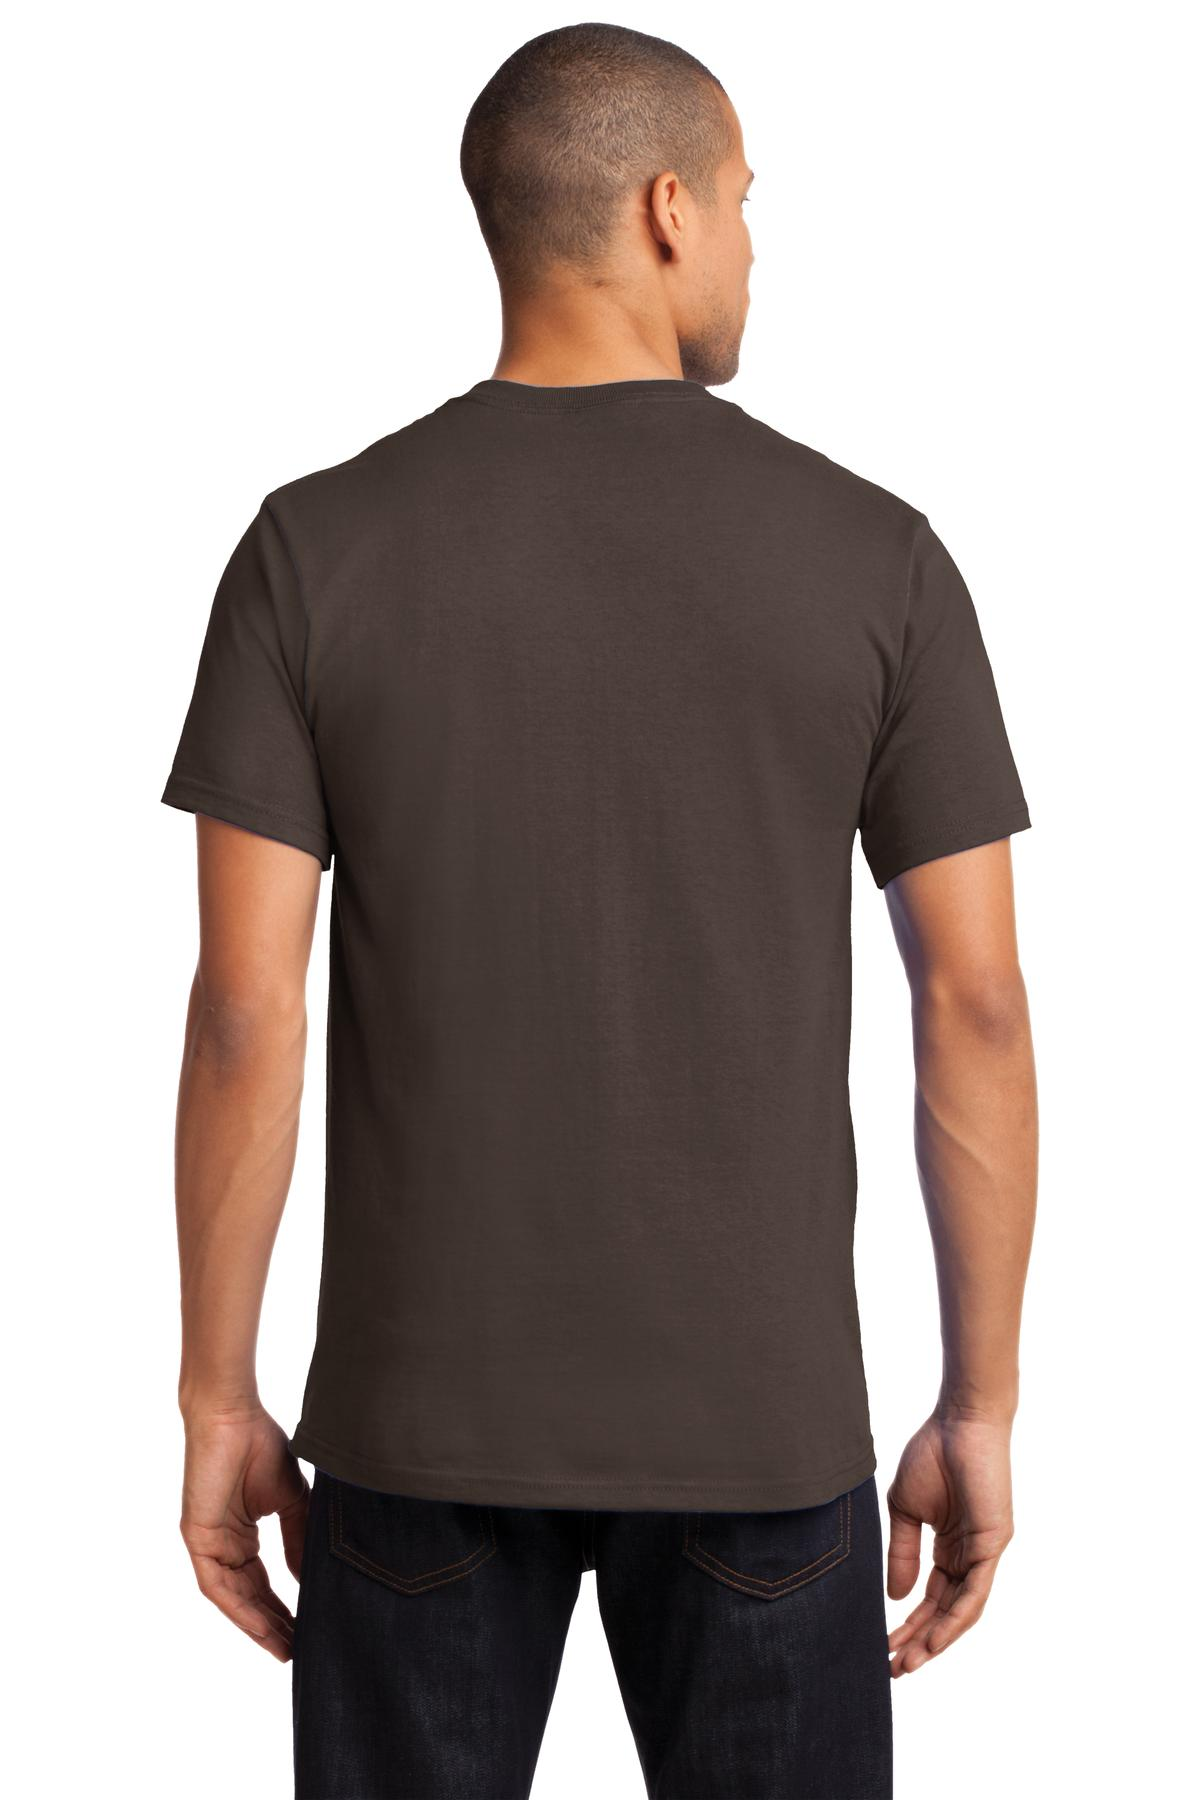 Port-amp-Company-Tall-Essential-TShirt-with-Pocket-PC61PT-Size-LT-4XLT thumbnail 10